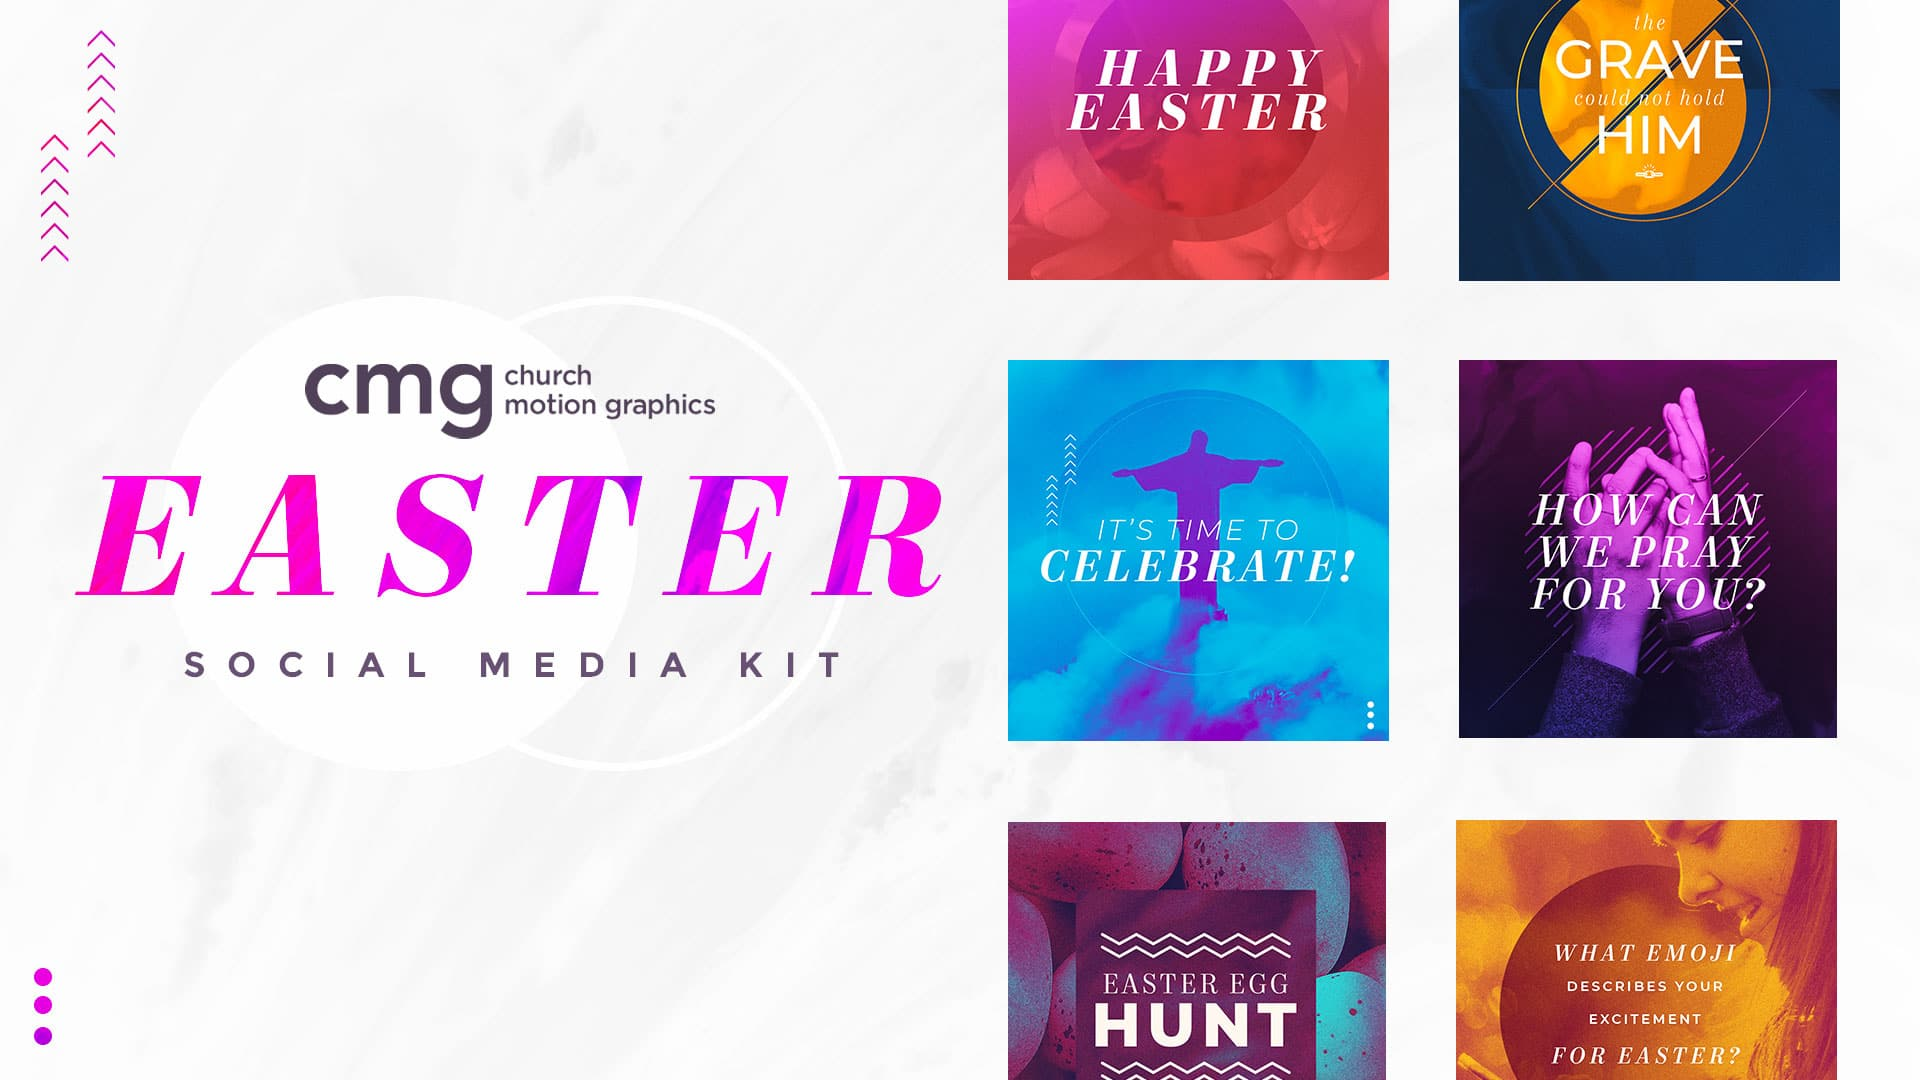 easter social media kit marble flow cmg church motion graphics